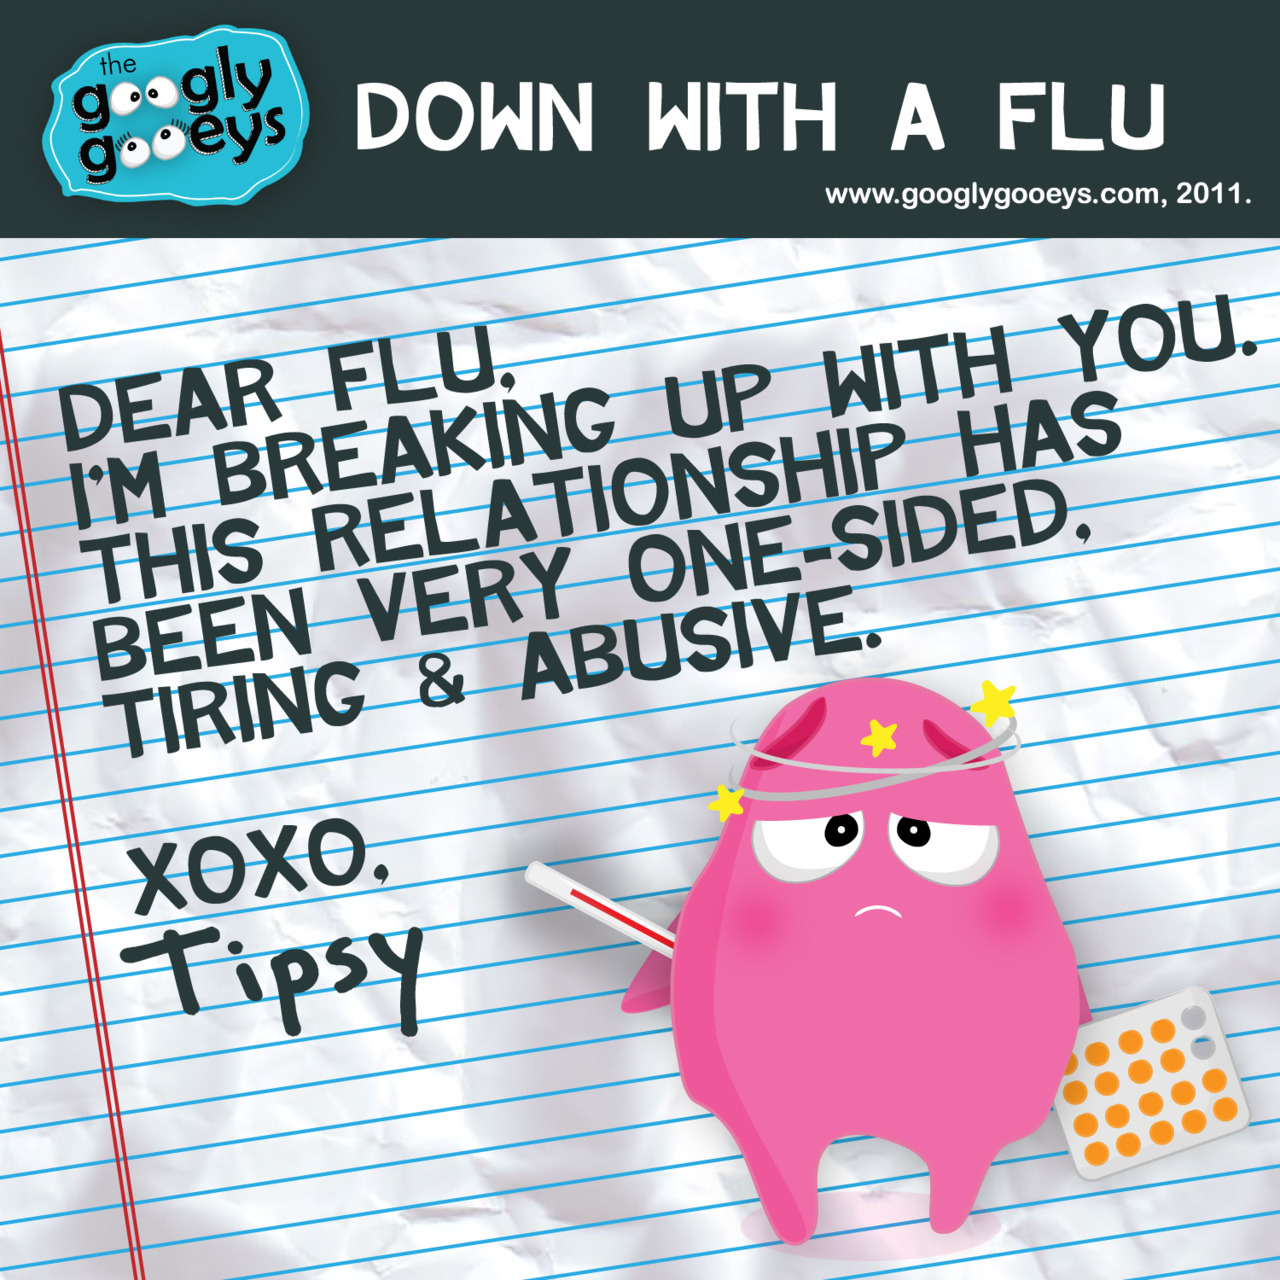 Dear Flu, I'm breaking up with you. This relationship has been very one-sided, tiring & abusive